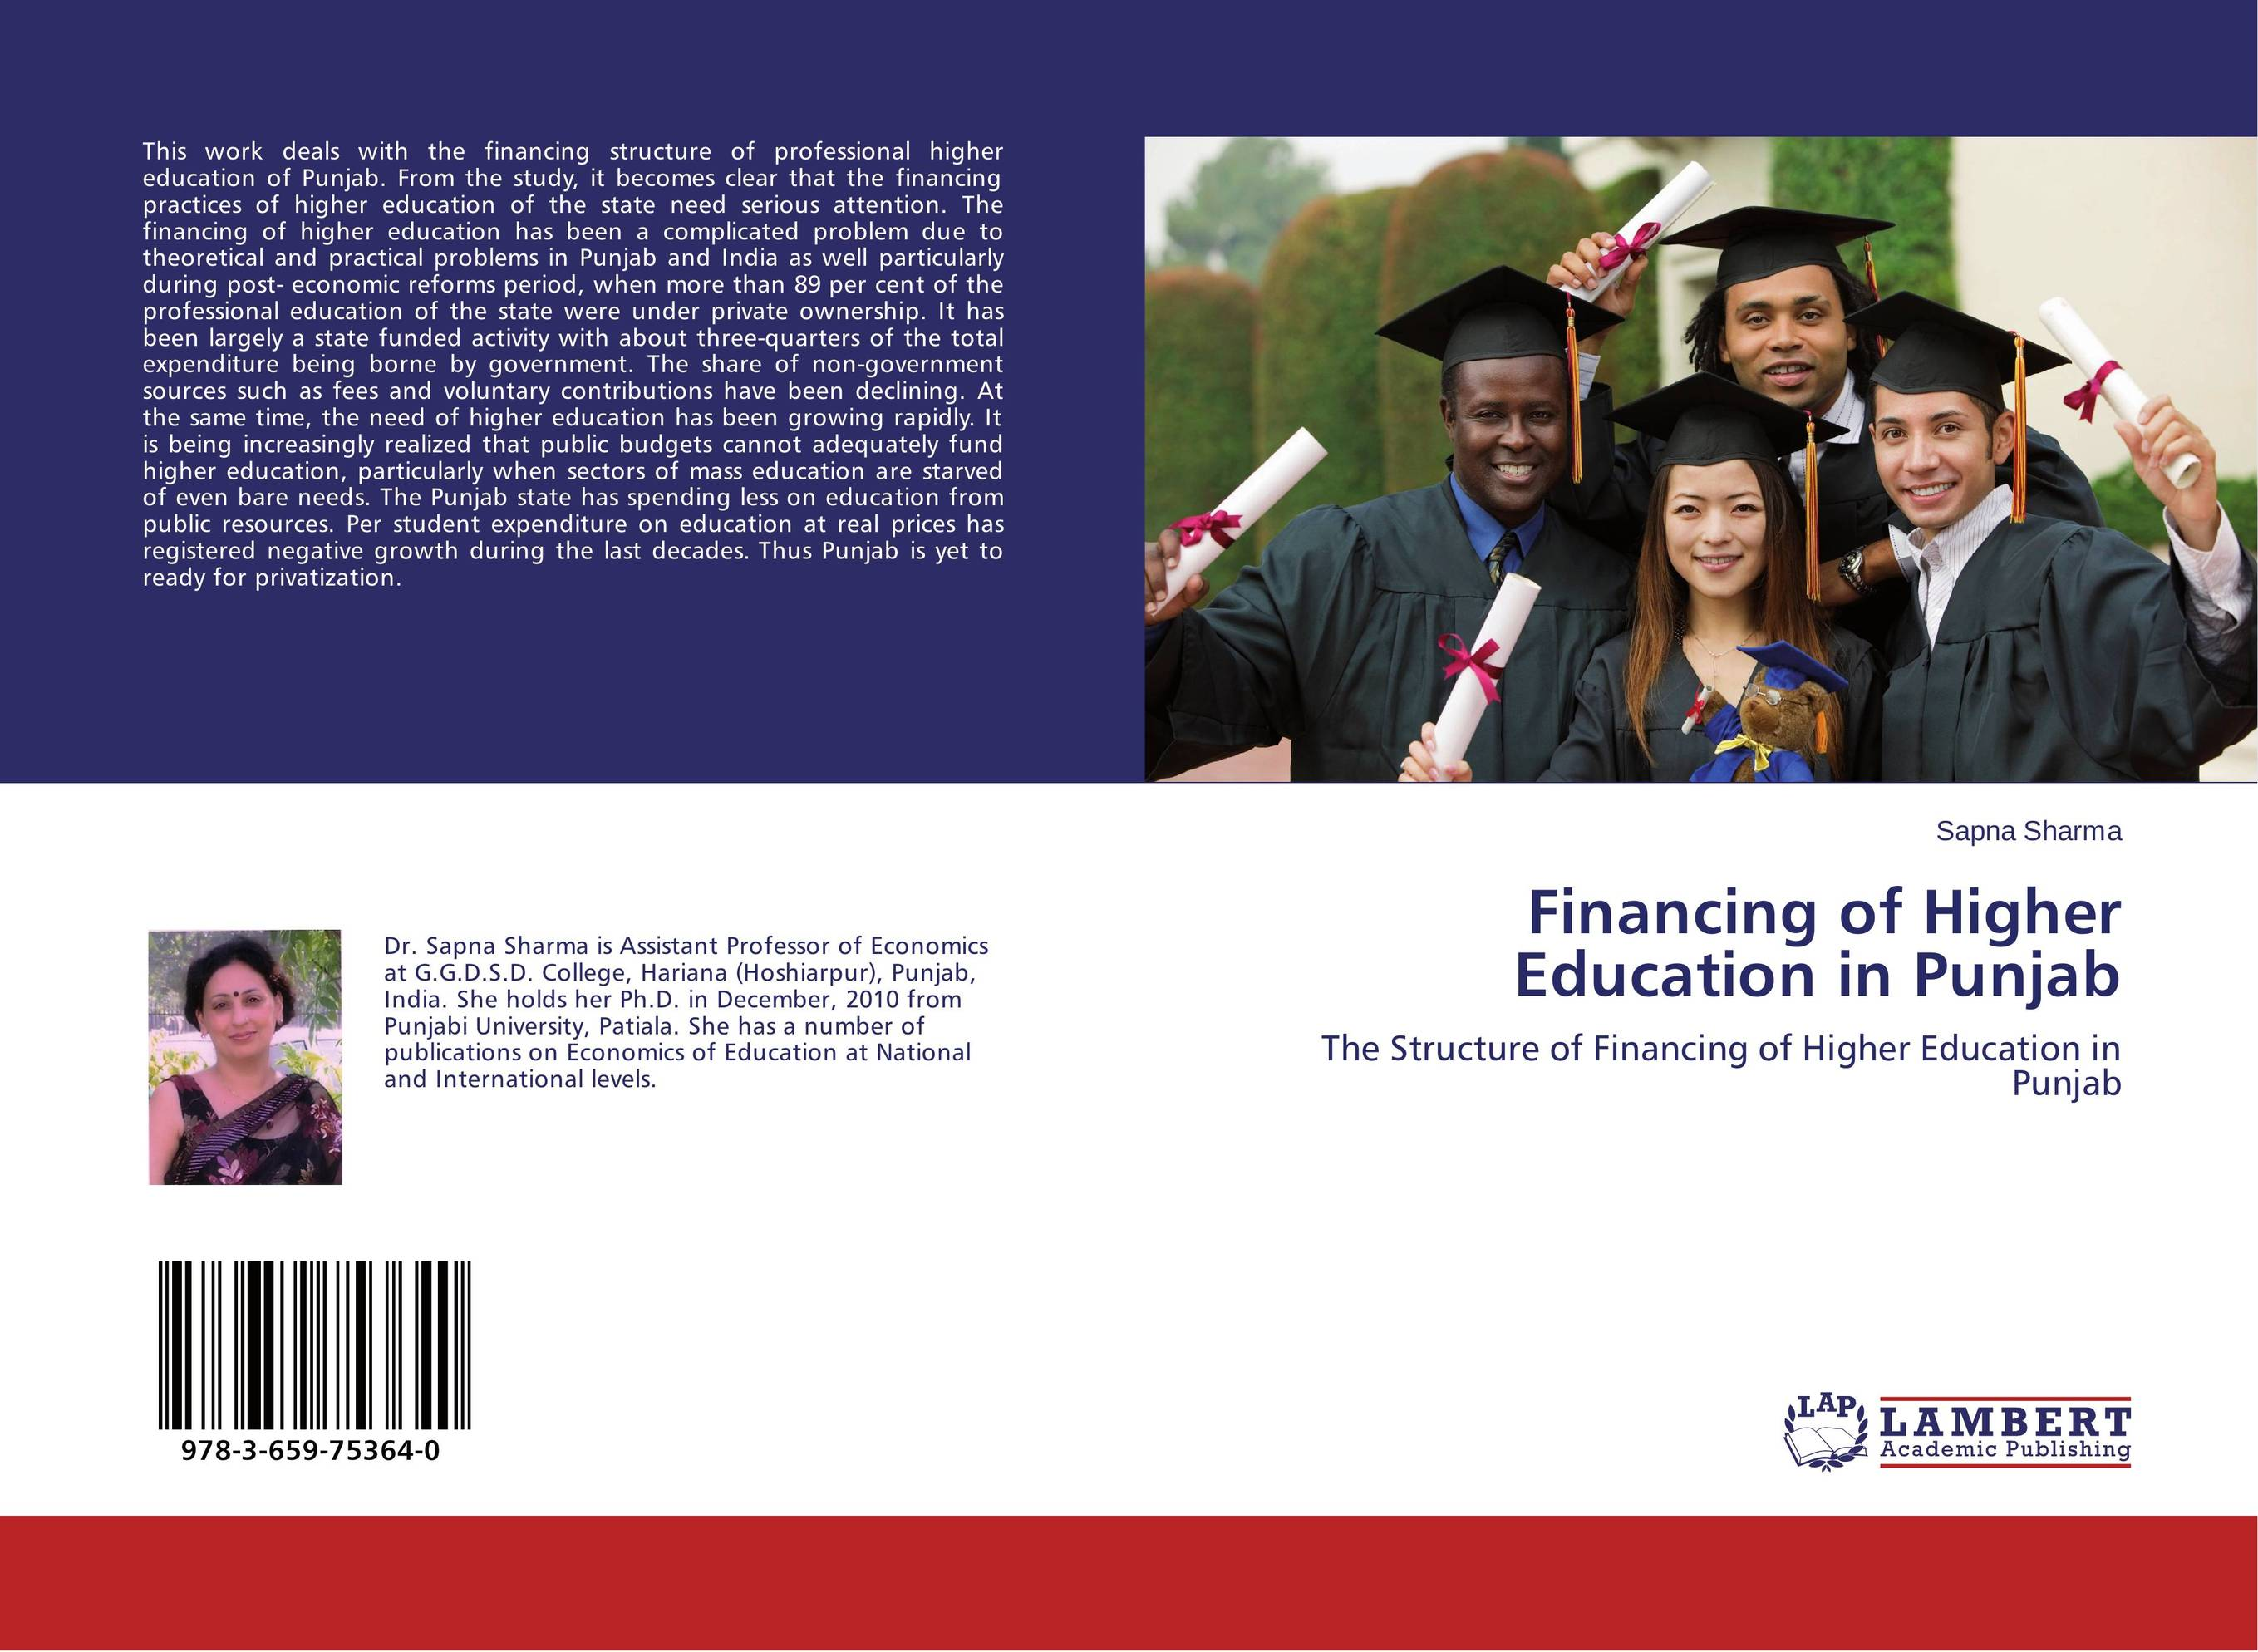 Financing of Higher Education in Punjab neema nitume financing higher education in tanzania